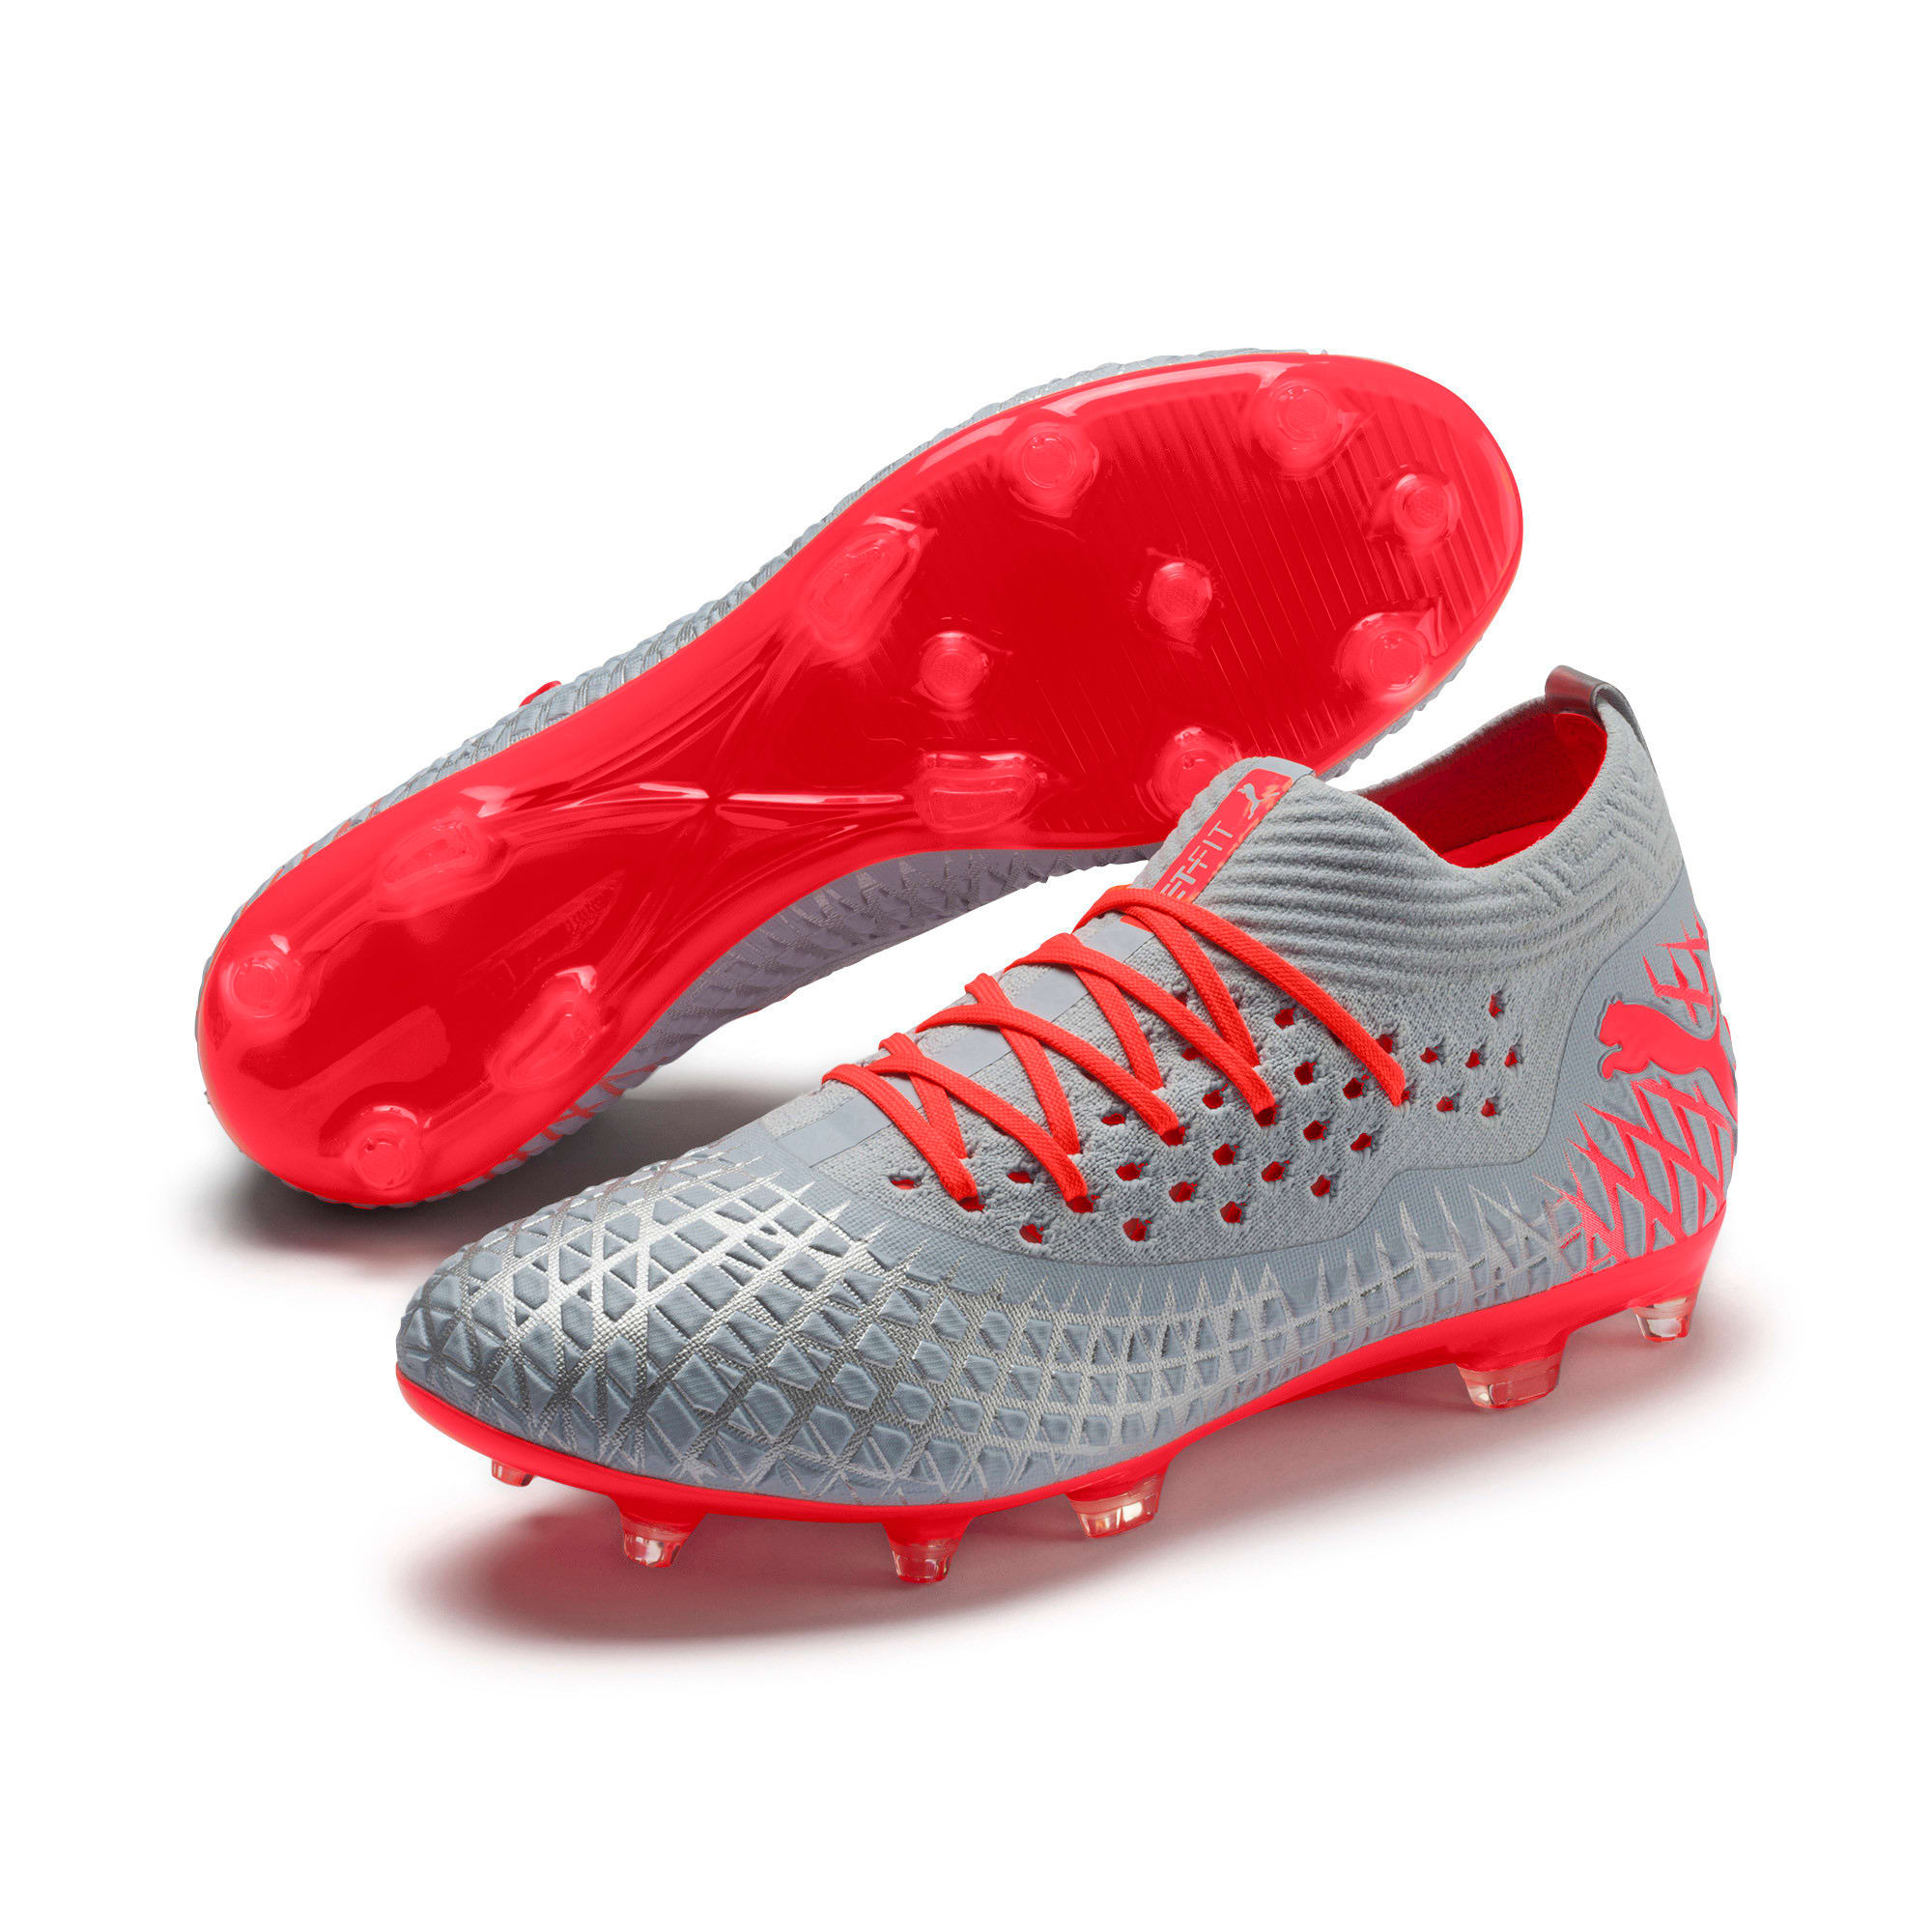 Thumbnail 3 of FUTURE 4.2 NETFIT FG/AG Men's Football Boots, Glacial Blue-Nrgy Red, medium